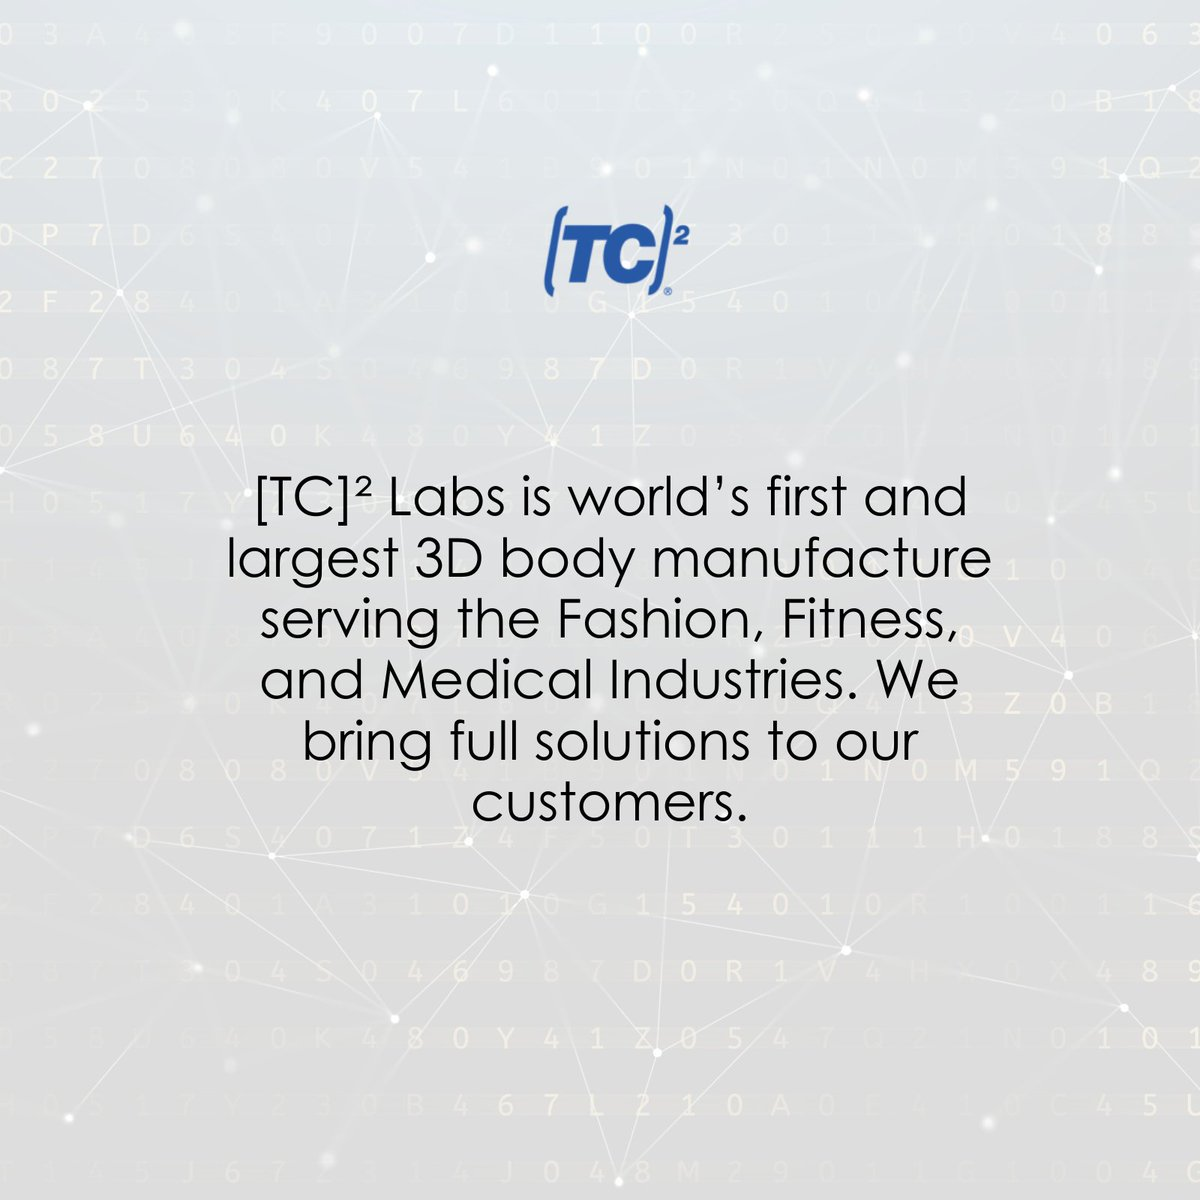 We are formed to offer 3D body scanners, Consultancy, Training, Installation services, Maintenance & support, Sizing information, Specialized software to our targeted vertical markets. For more such updates:  #3DTechnology #3dcustomisedsolutions #3DServices